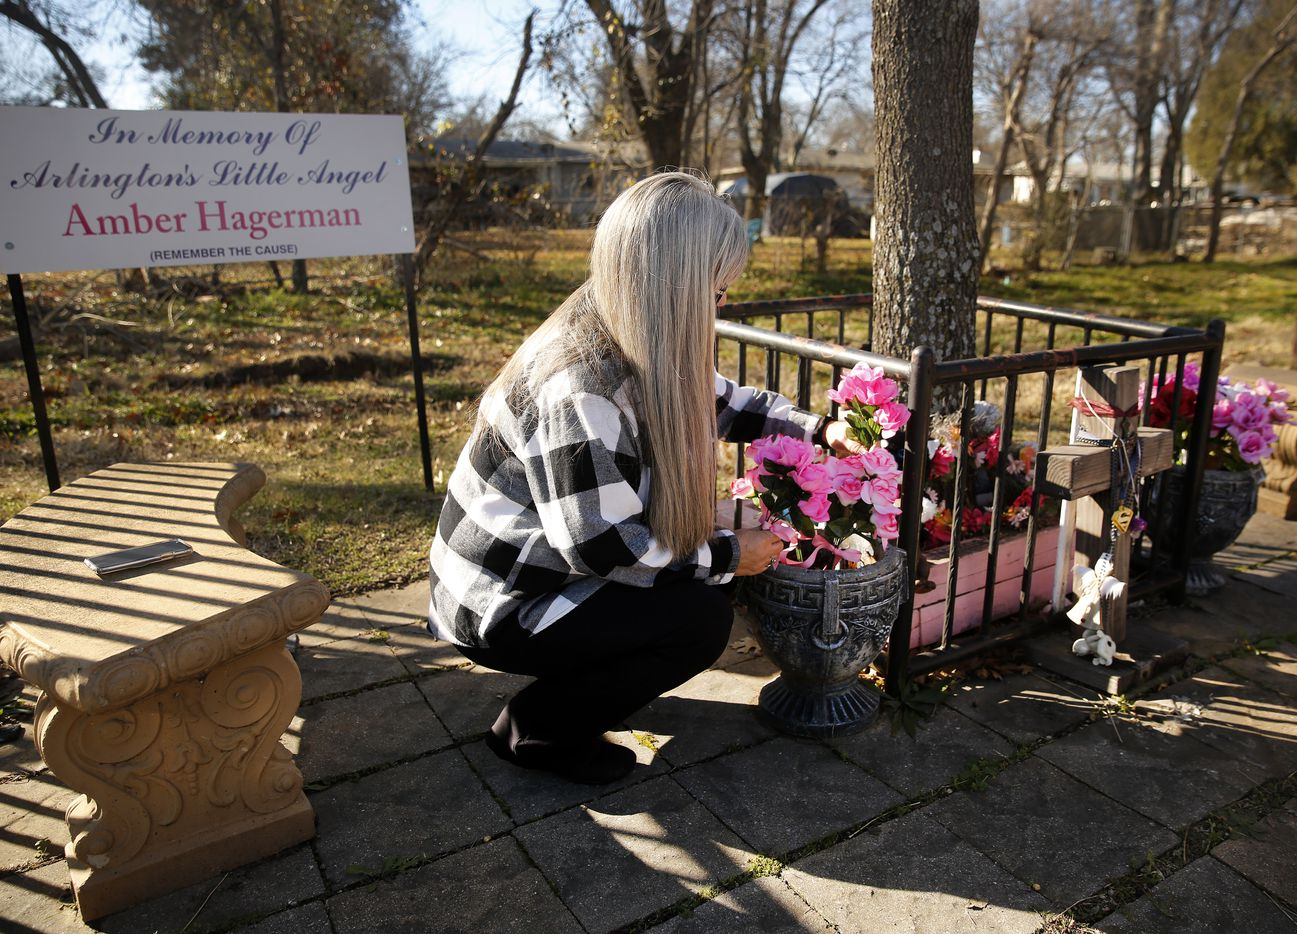 Amber Hagerman's mother Donna Williams places new flowers at a permanent memorial for her daughter at the abduction site in E. Arlington, Texas, Wednesday, January 13, 2021.